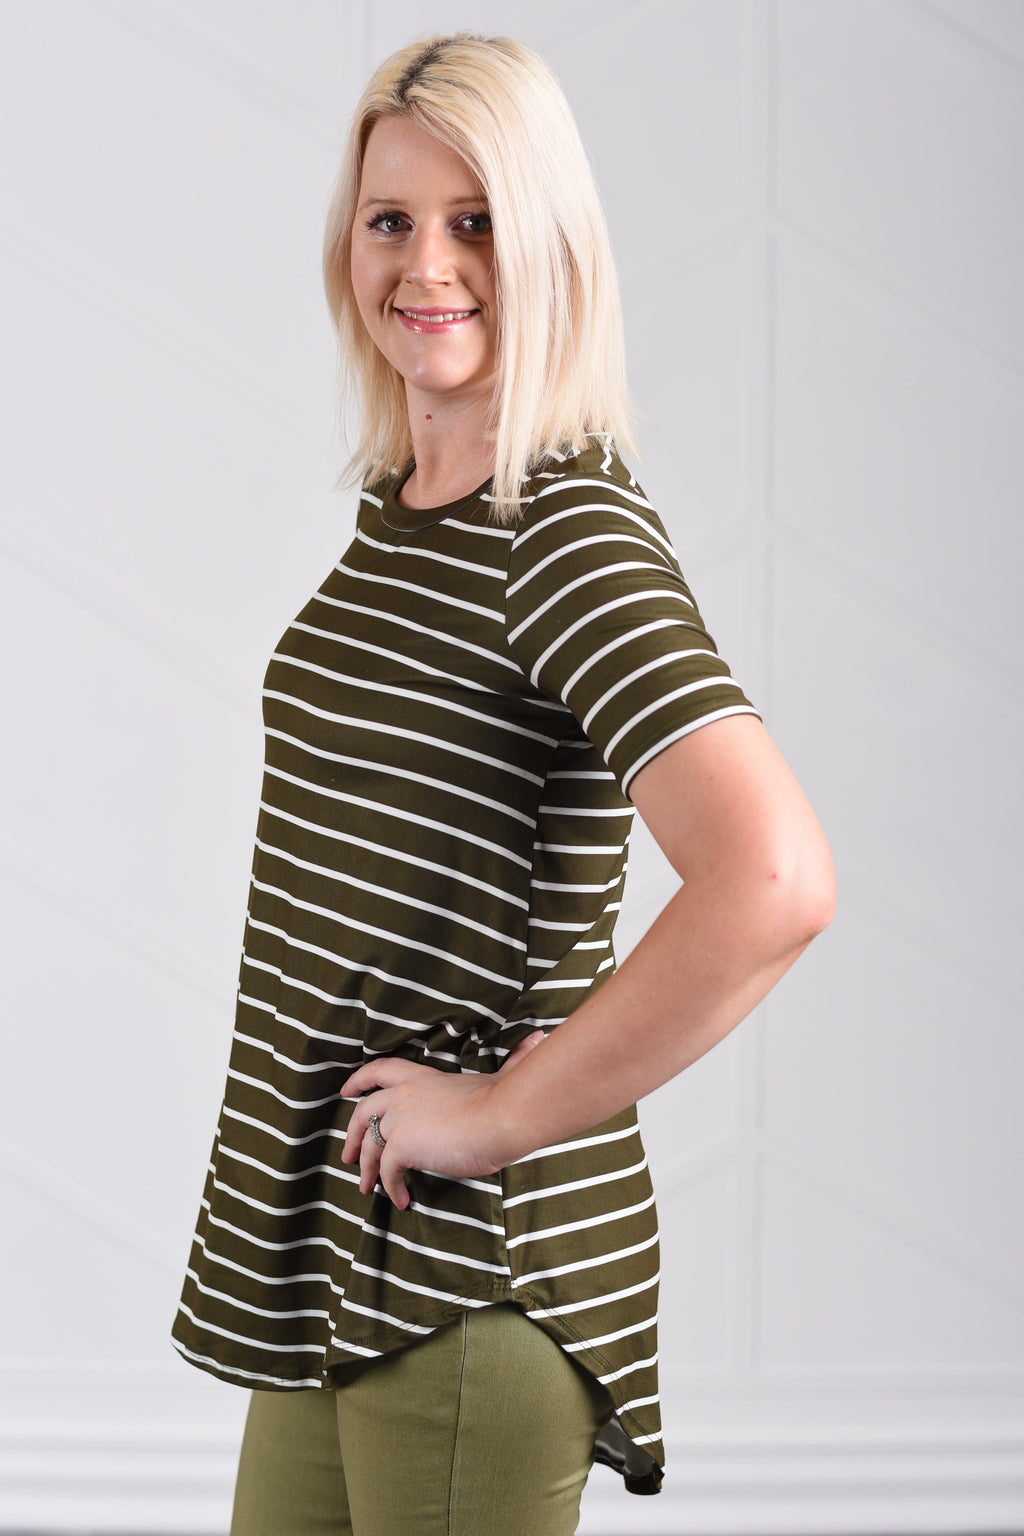 Jamie Striped Flowy Top - Strong Confident You